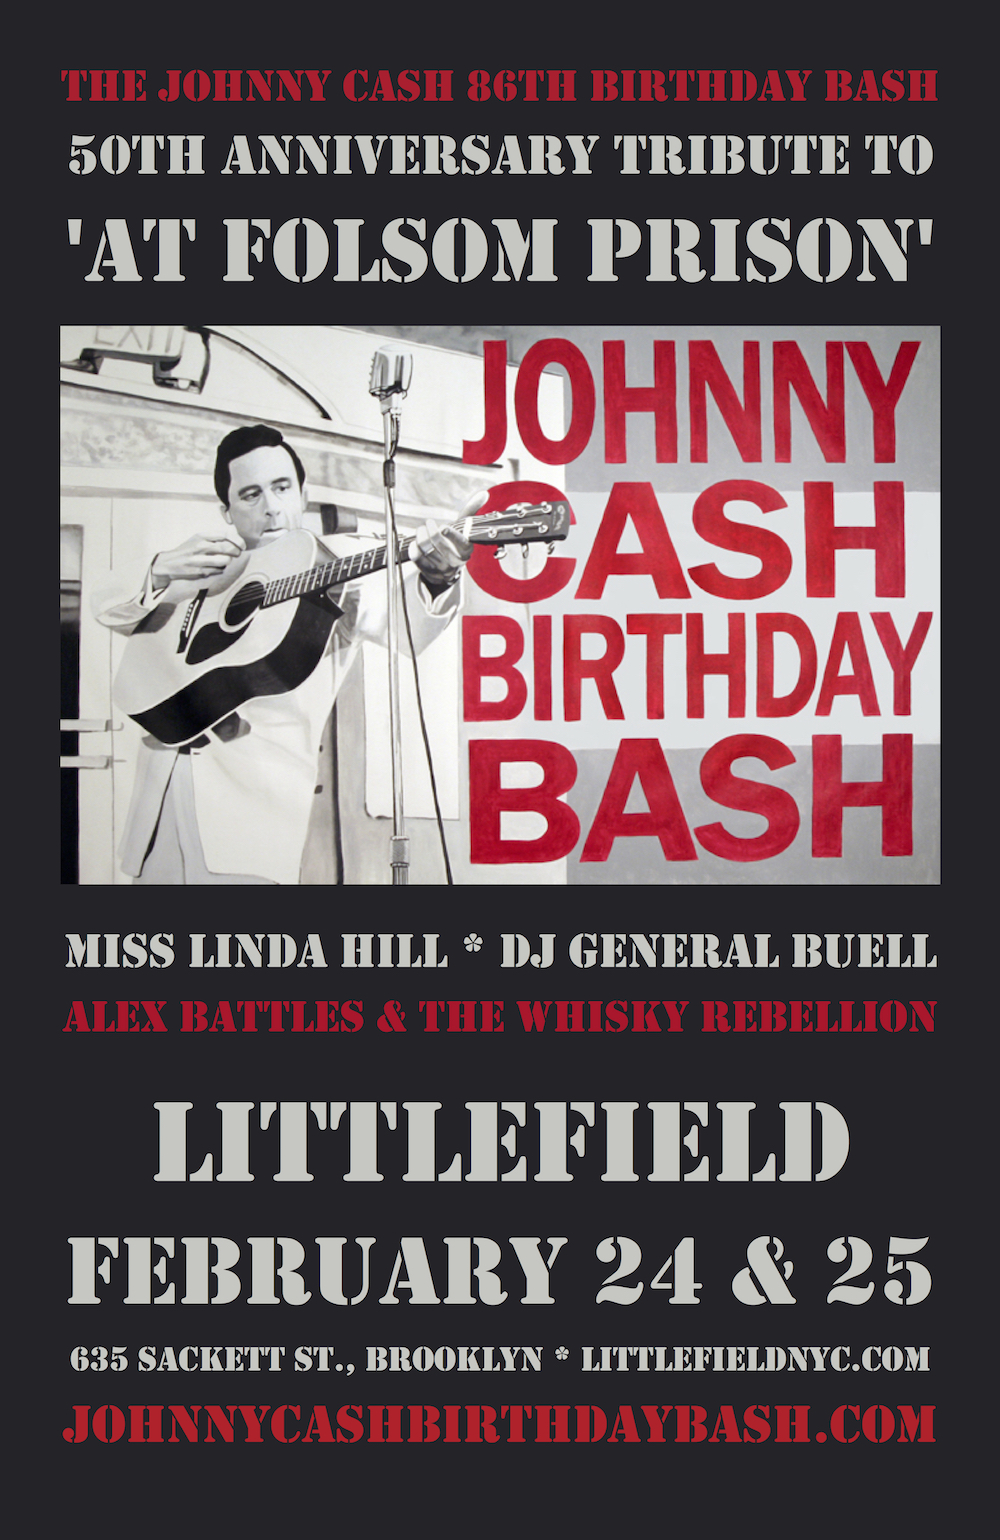 Johnny Cash 86th Birthday Bash, February 24 &                   25, 2018